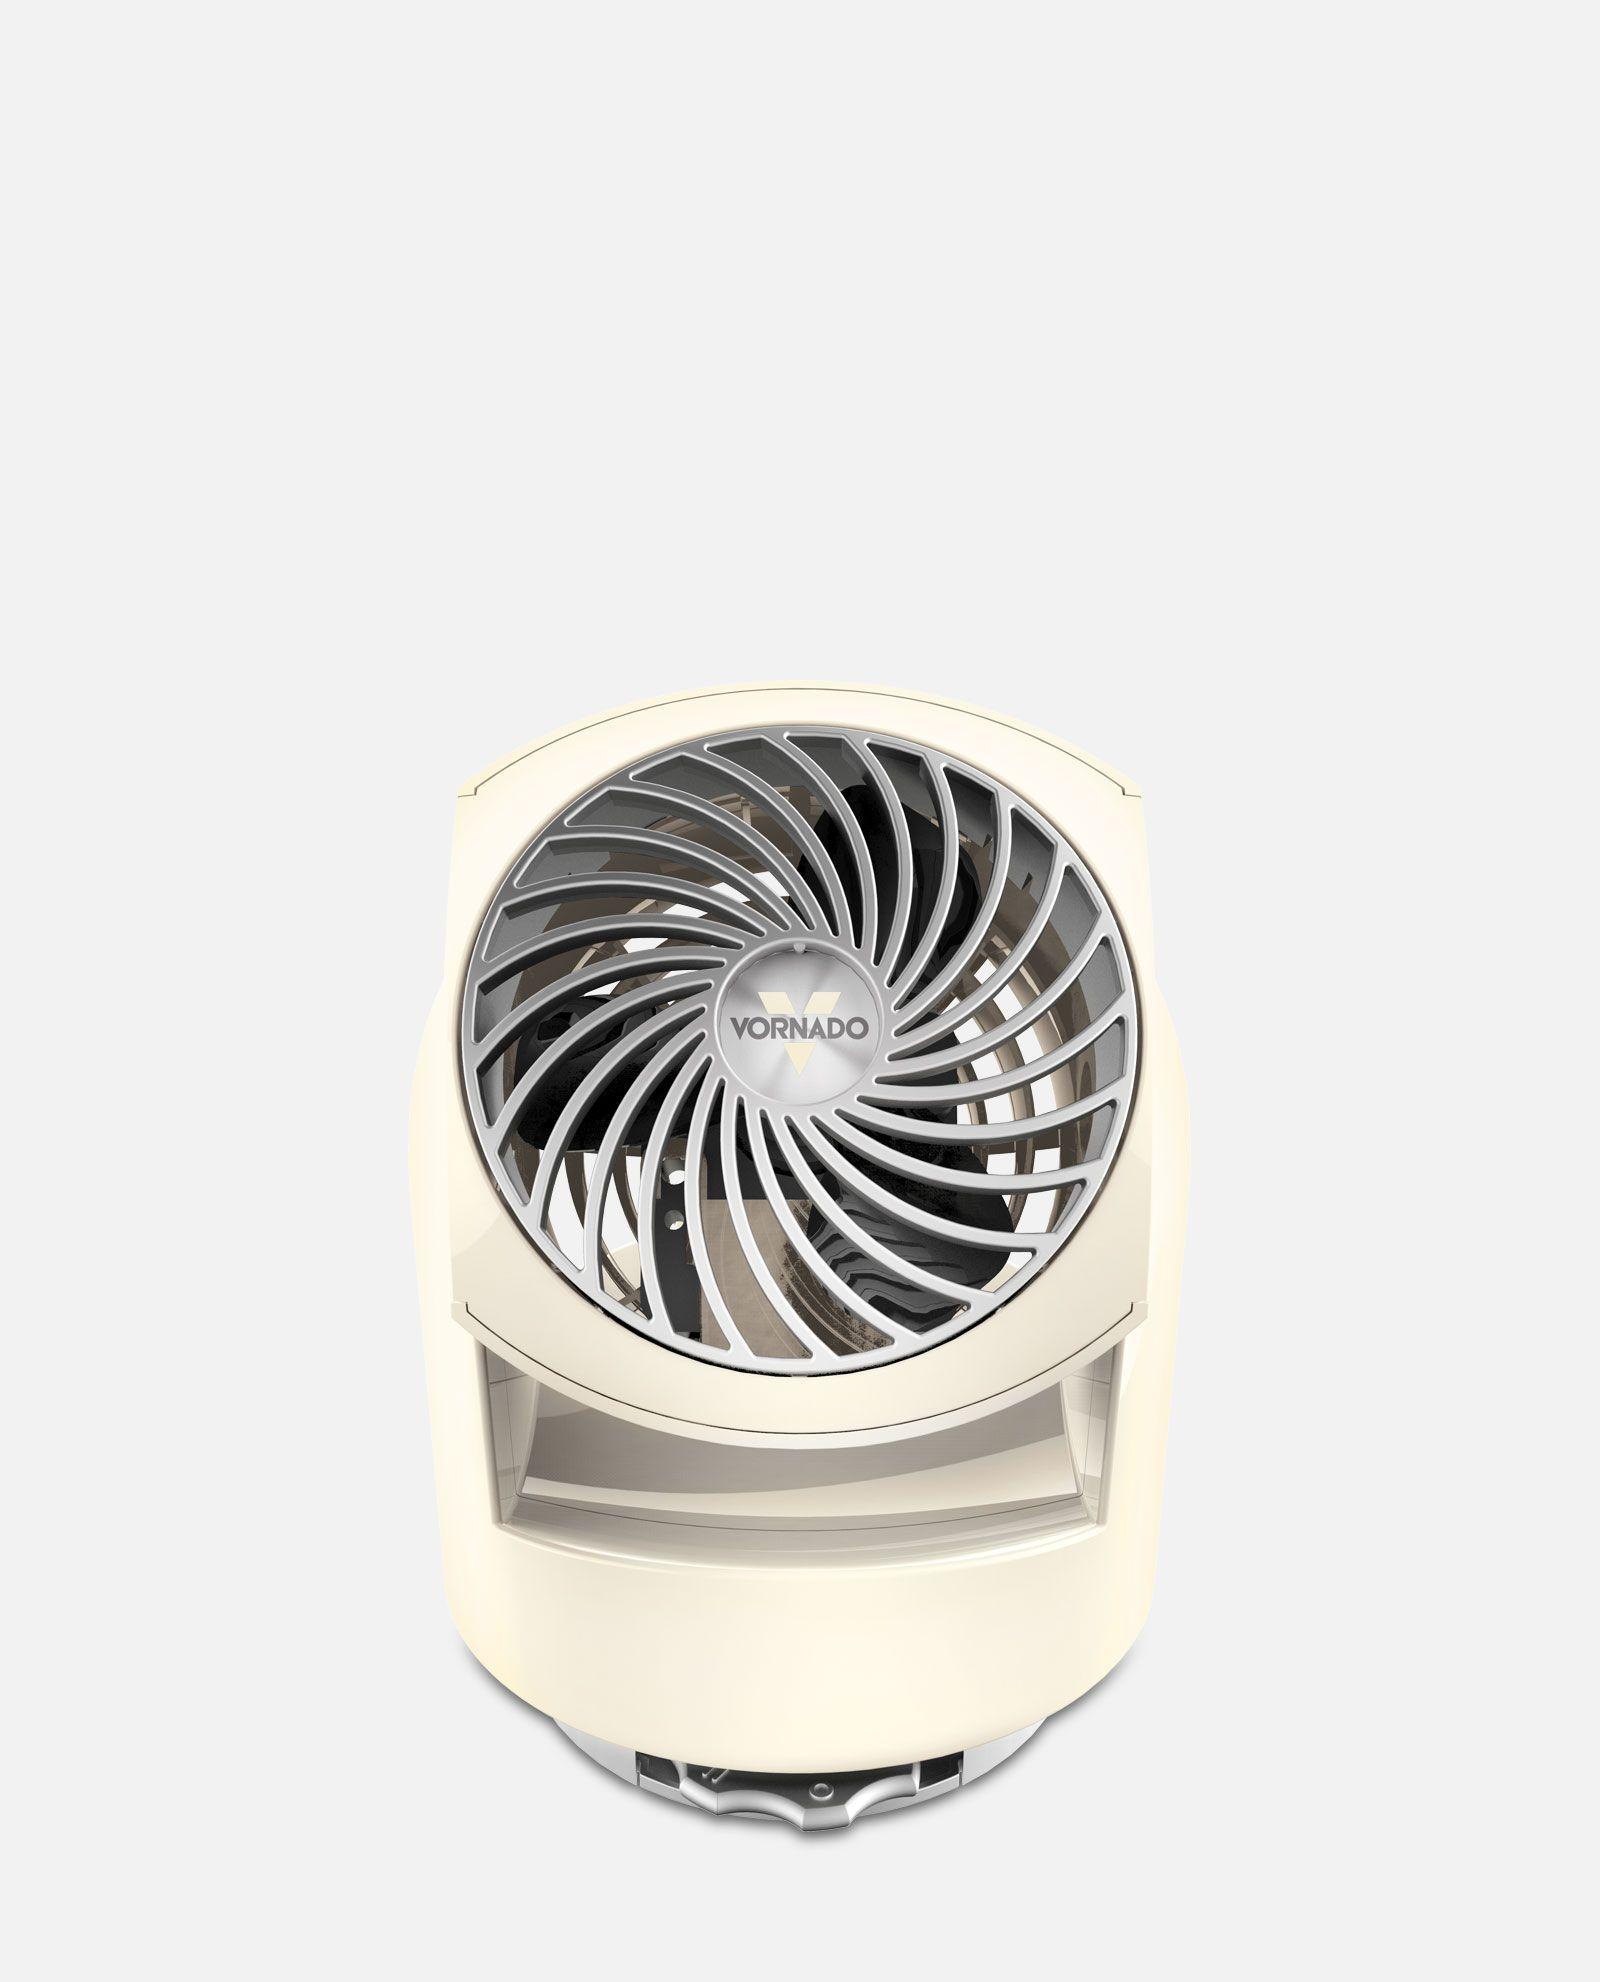 Flippi v6 personal air circulator vornado for Air circulation fans home